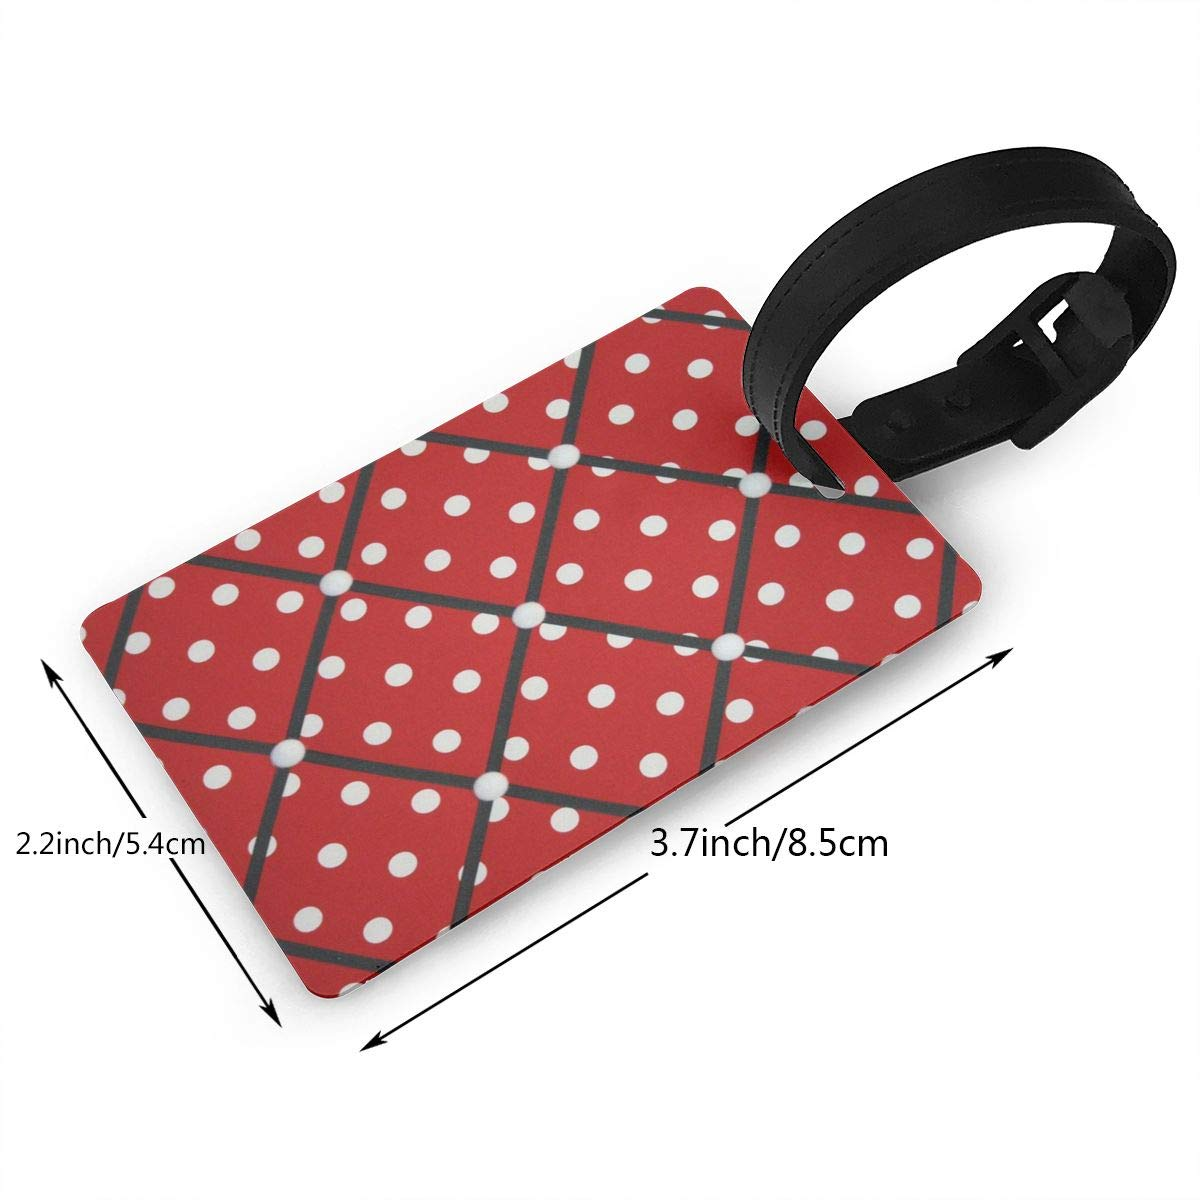 Luggage Tags Red White Polka Dot Suitcase Tags Holder Customized Travel Gifts Labels Travel Accessories